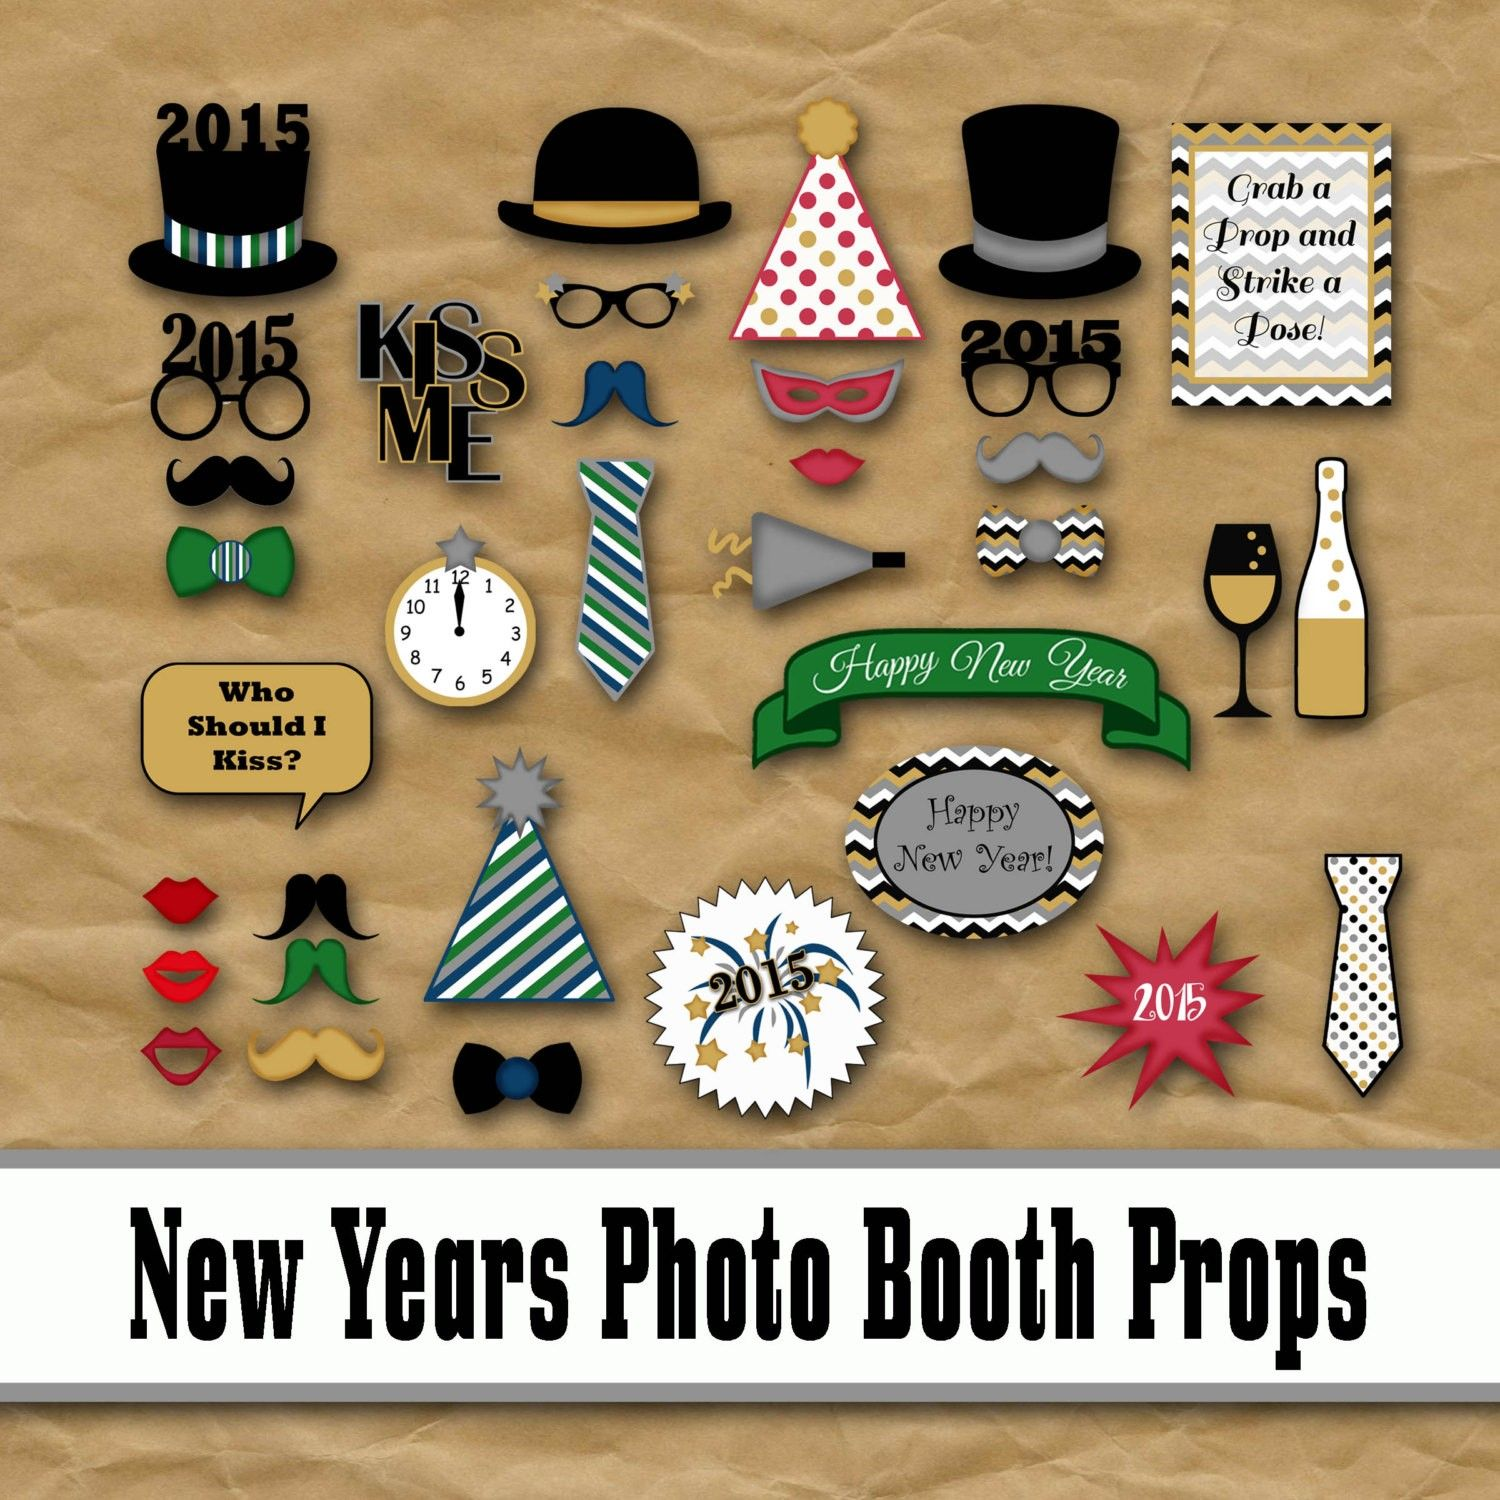 wedding photo booth props printable%0A New Years Eve Photo Booth Props      Printable       new year ideas   digital collage